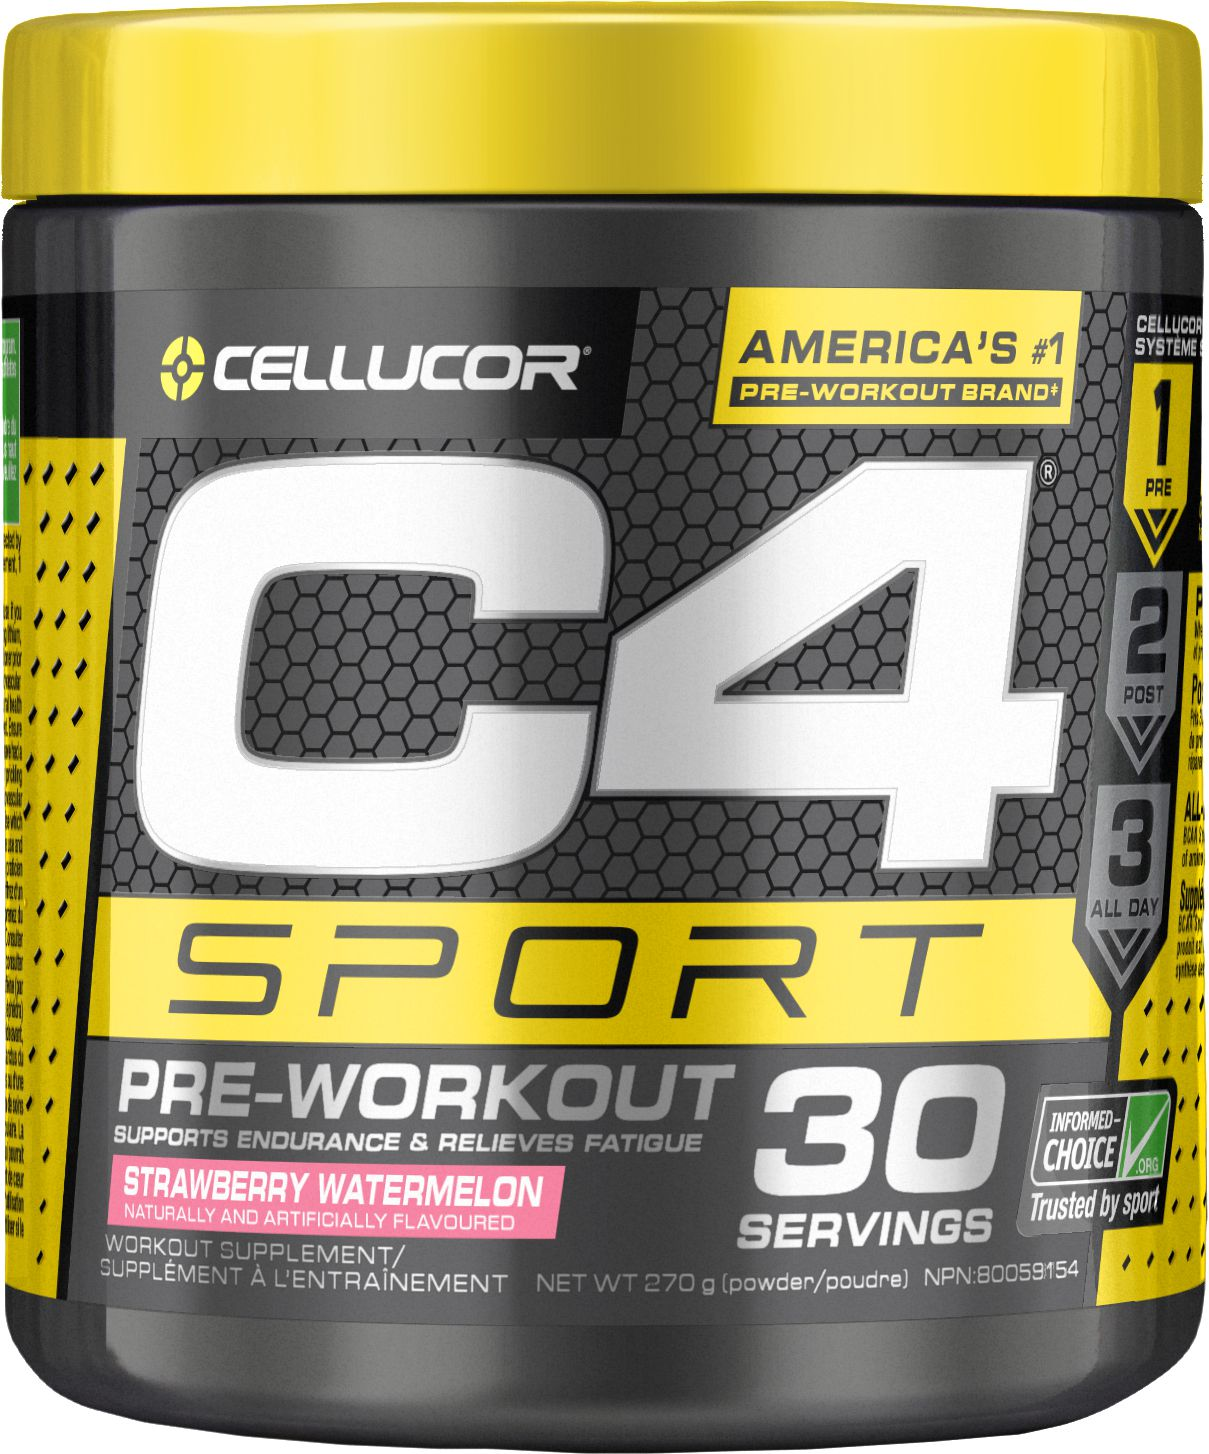 C4 Pre Workout Banned : workout, banned, Sport, Workout, Strawberry, Watermelon, Walmart, Canada